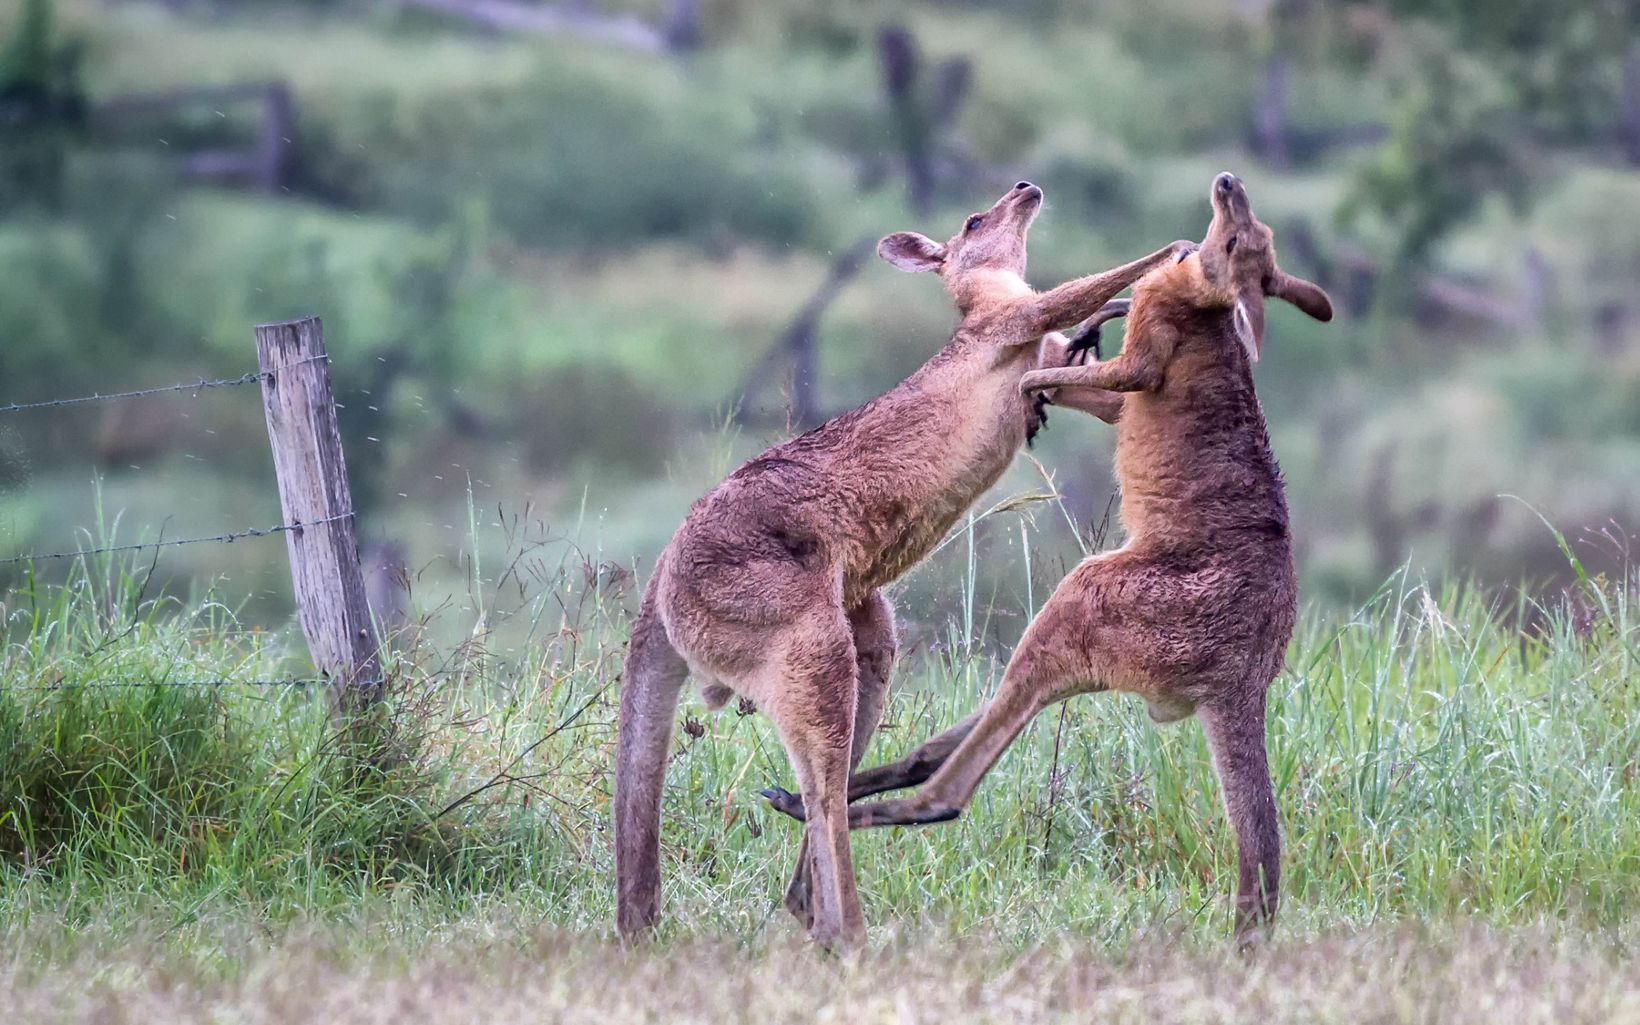 Two Eastern Grey Kangaroos (Macropus giganteus) do battle with powerful hind leg kicks and arm wrestling at Amberley, Queensland, Australia